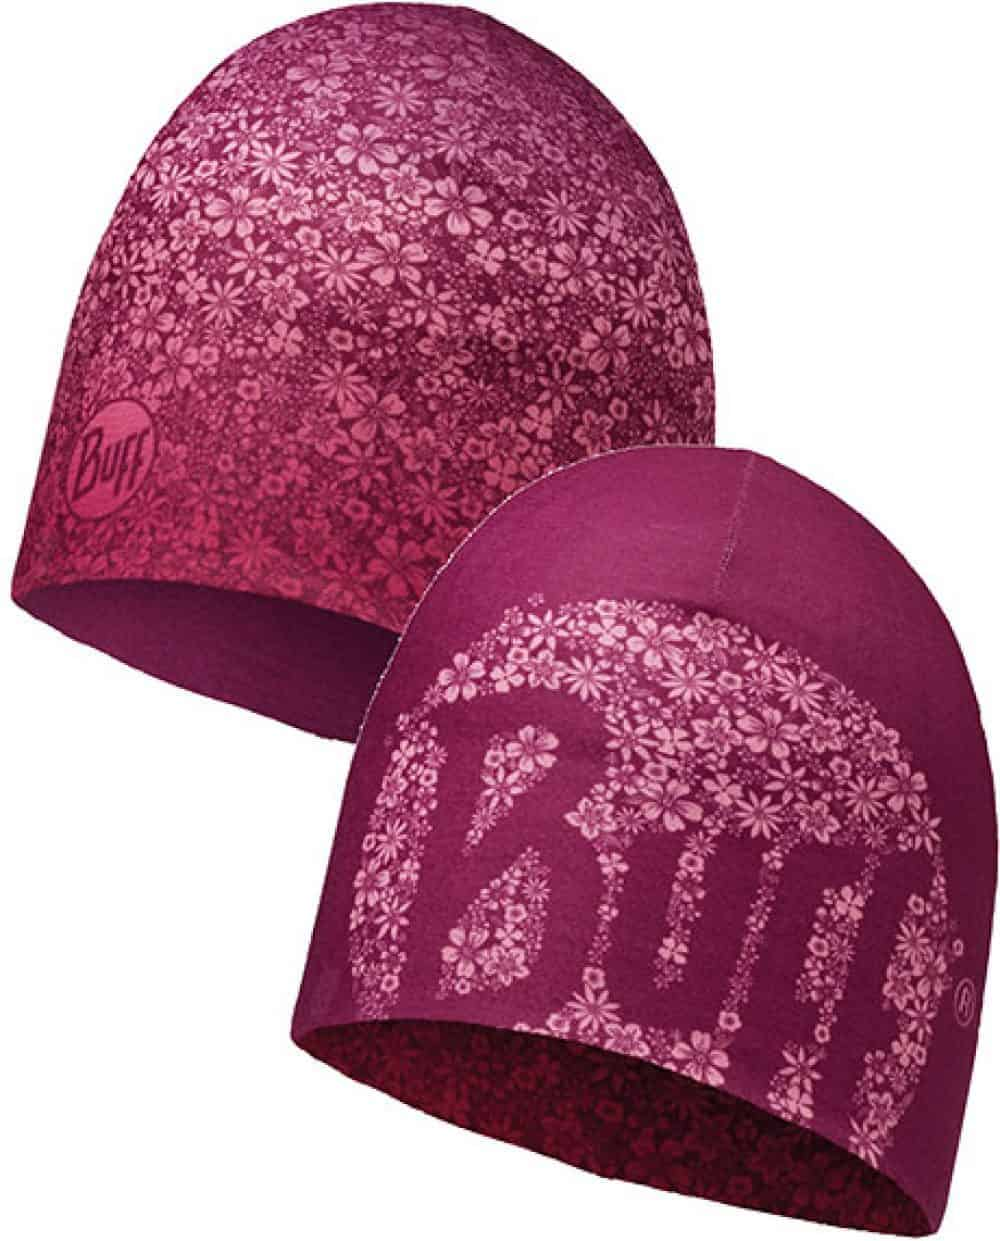 "Composite Image of the Microfiber Reversible Hat Buff® design ""Yenta / Pink"""